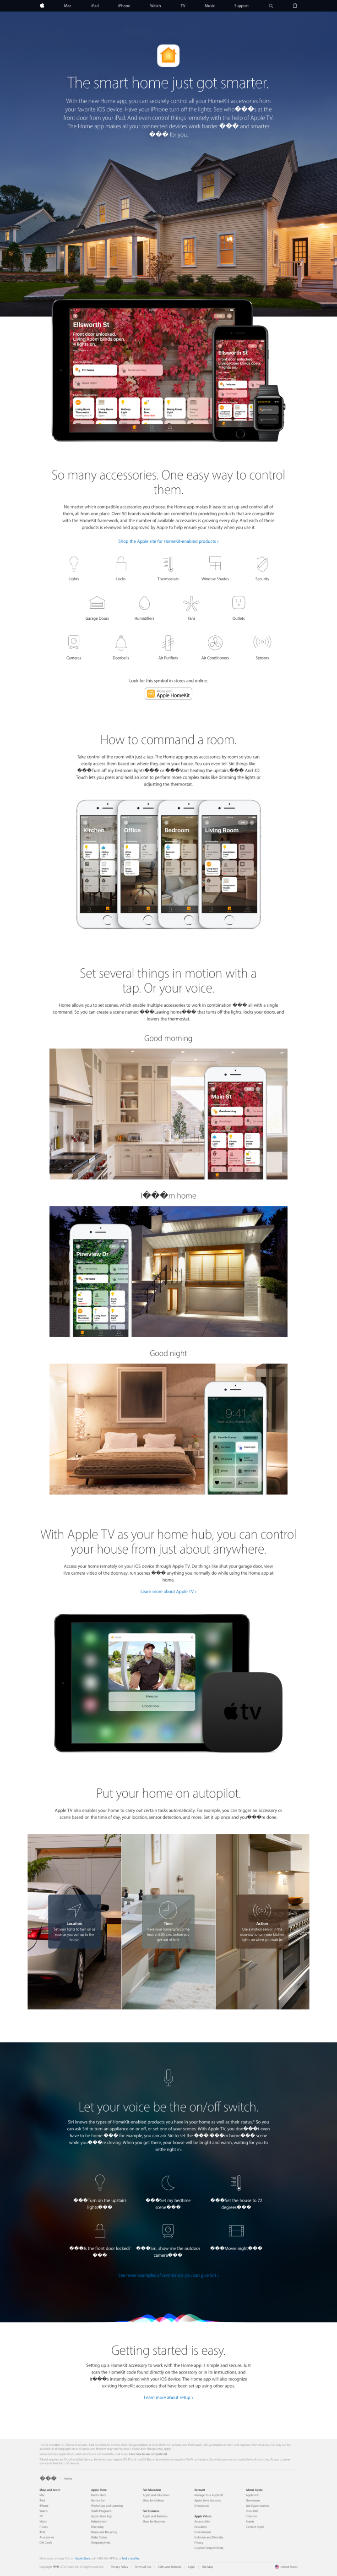 The smart home just got smarter. With the new Home app, you can securely control all your HomeKit accessories from your favorite iOS device. Have your iPhone turn off the lights. See who's at the front door from your iPad. And even control things remotely with the help of Apple TV. The Home app makes all your connected devices work harder — and smarter — for you.